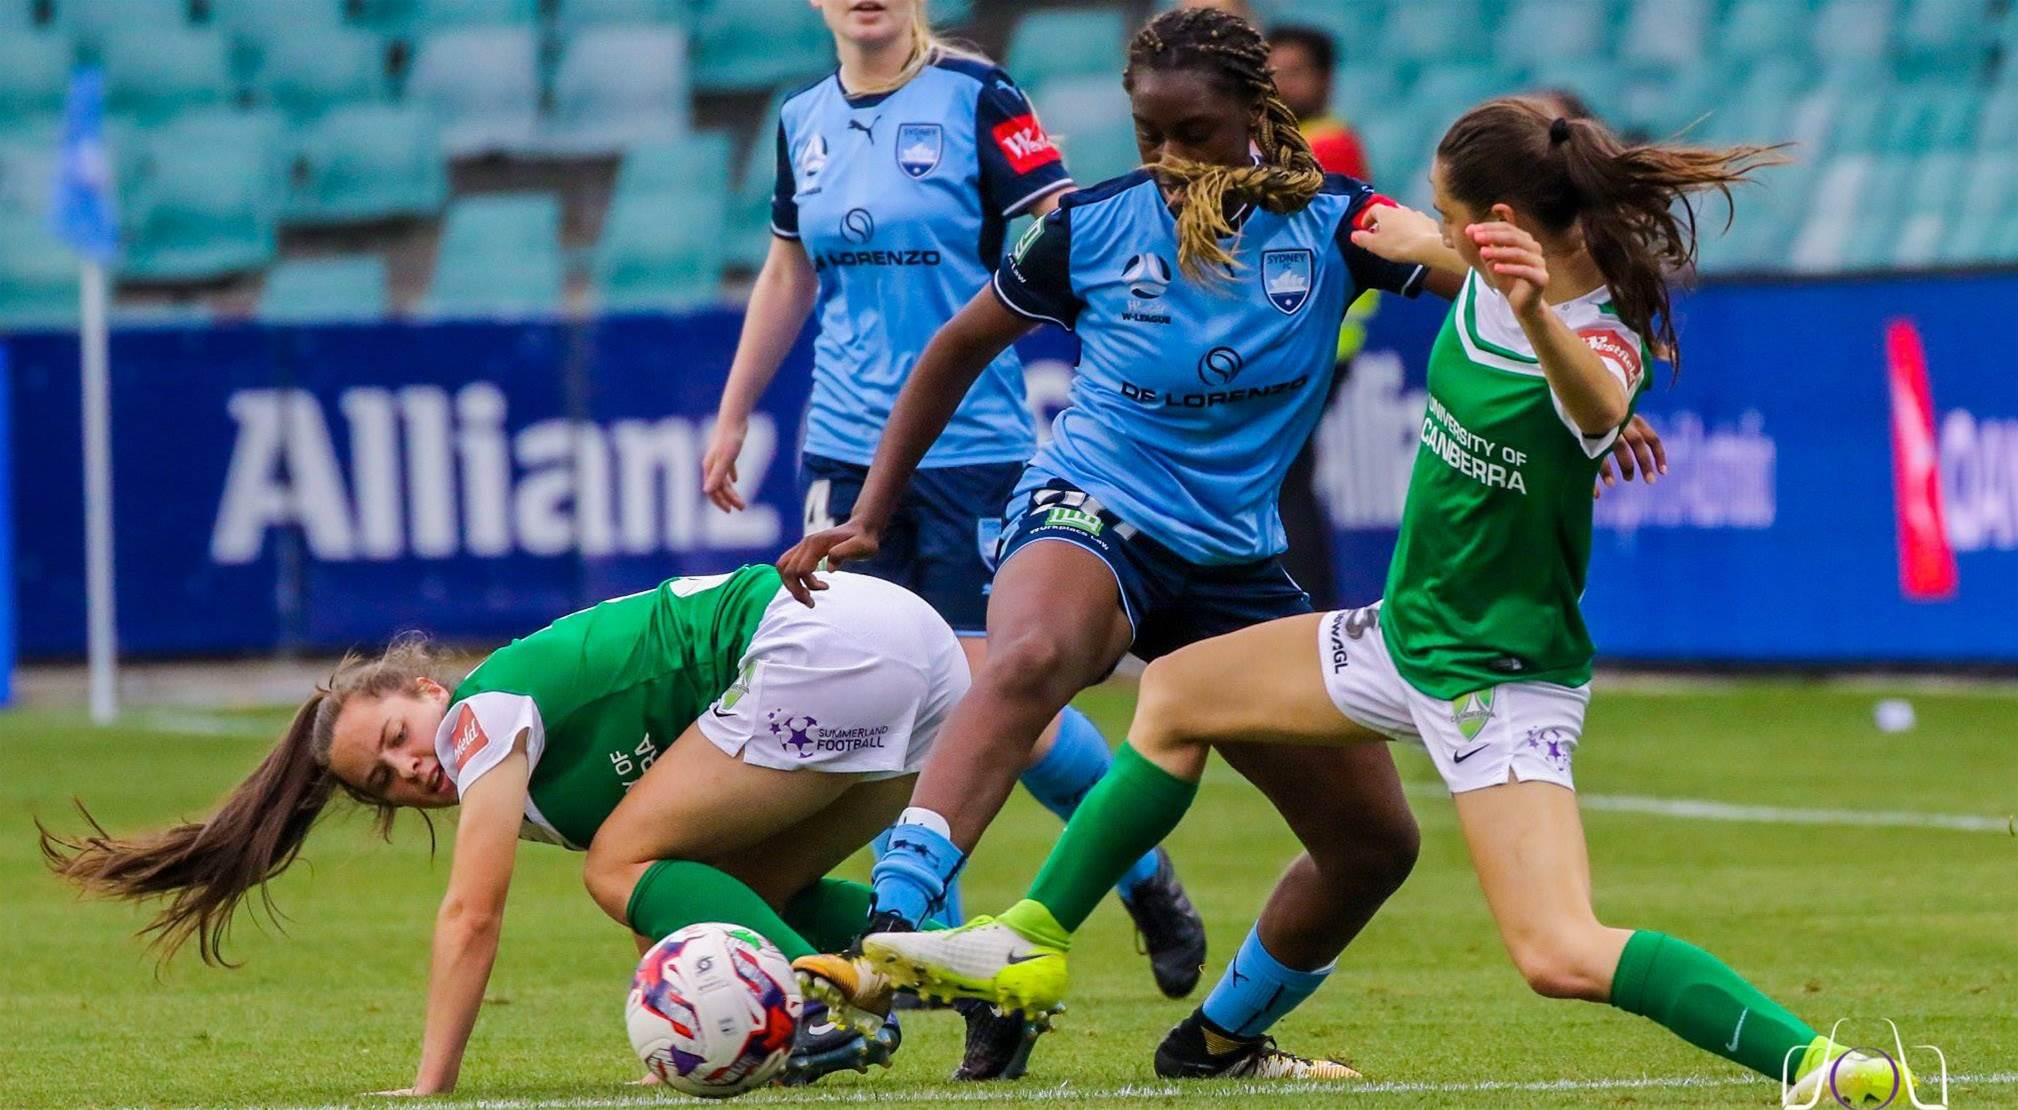 MATCH ANALYSIS: Sydney FC down Canberra United, move into Top 4